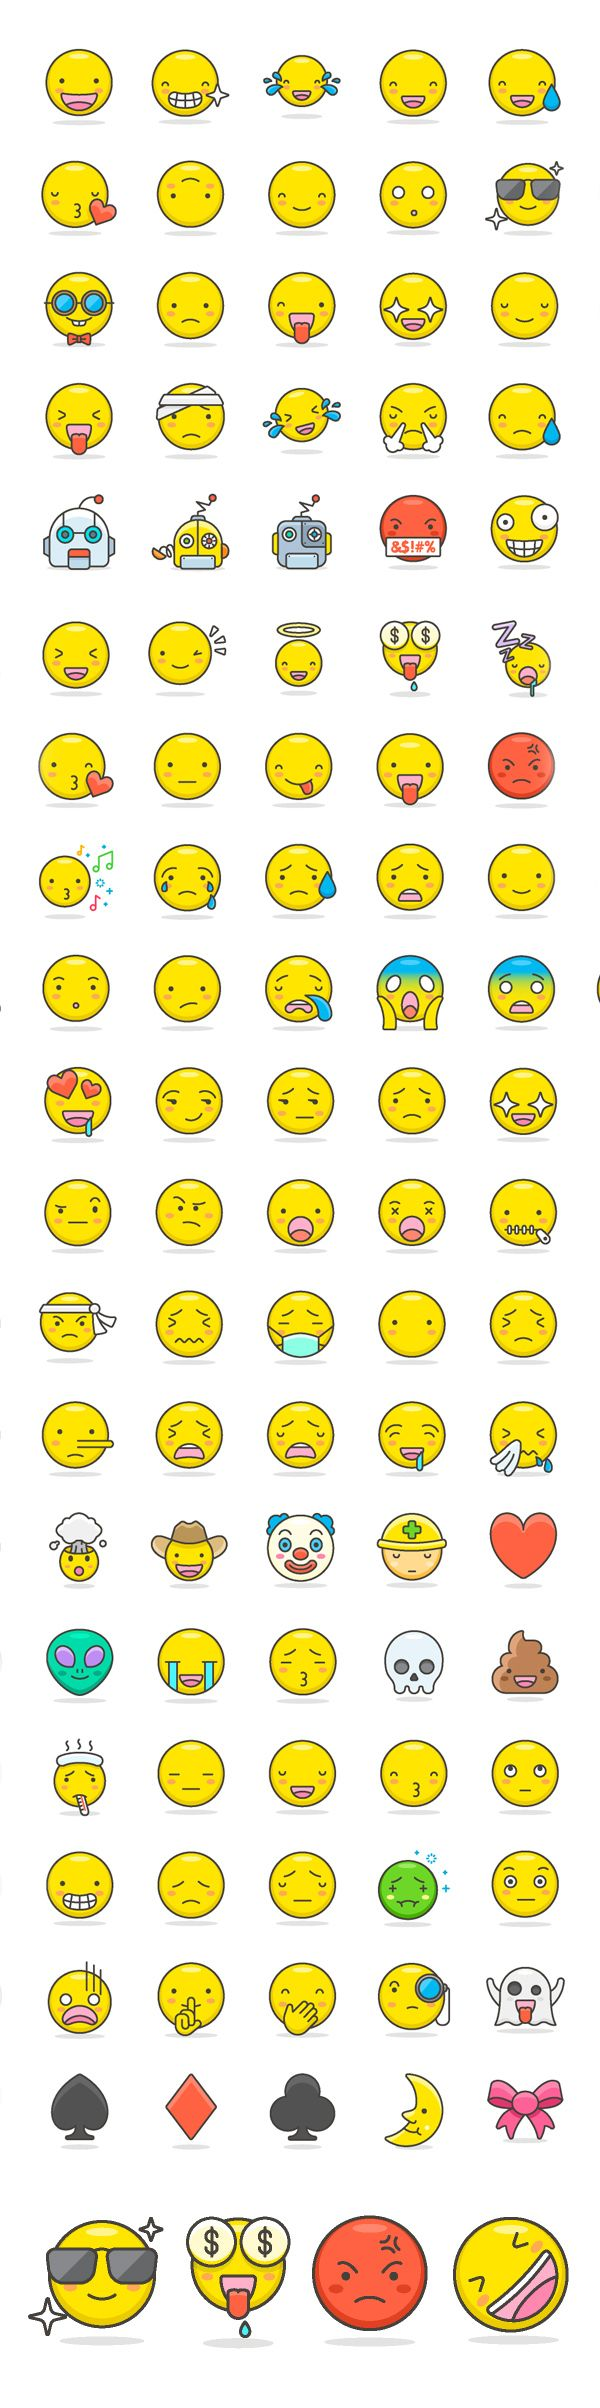 Free Cute Emoji Icons Set (100 Icons) #emoji #funny #romantic #cute #freebie #freeicons #psdicons #svg #vectoricons #outlineicons